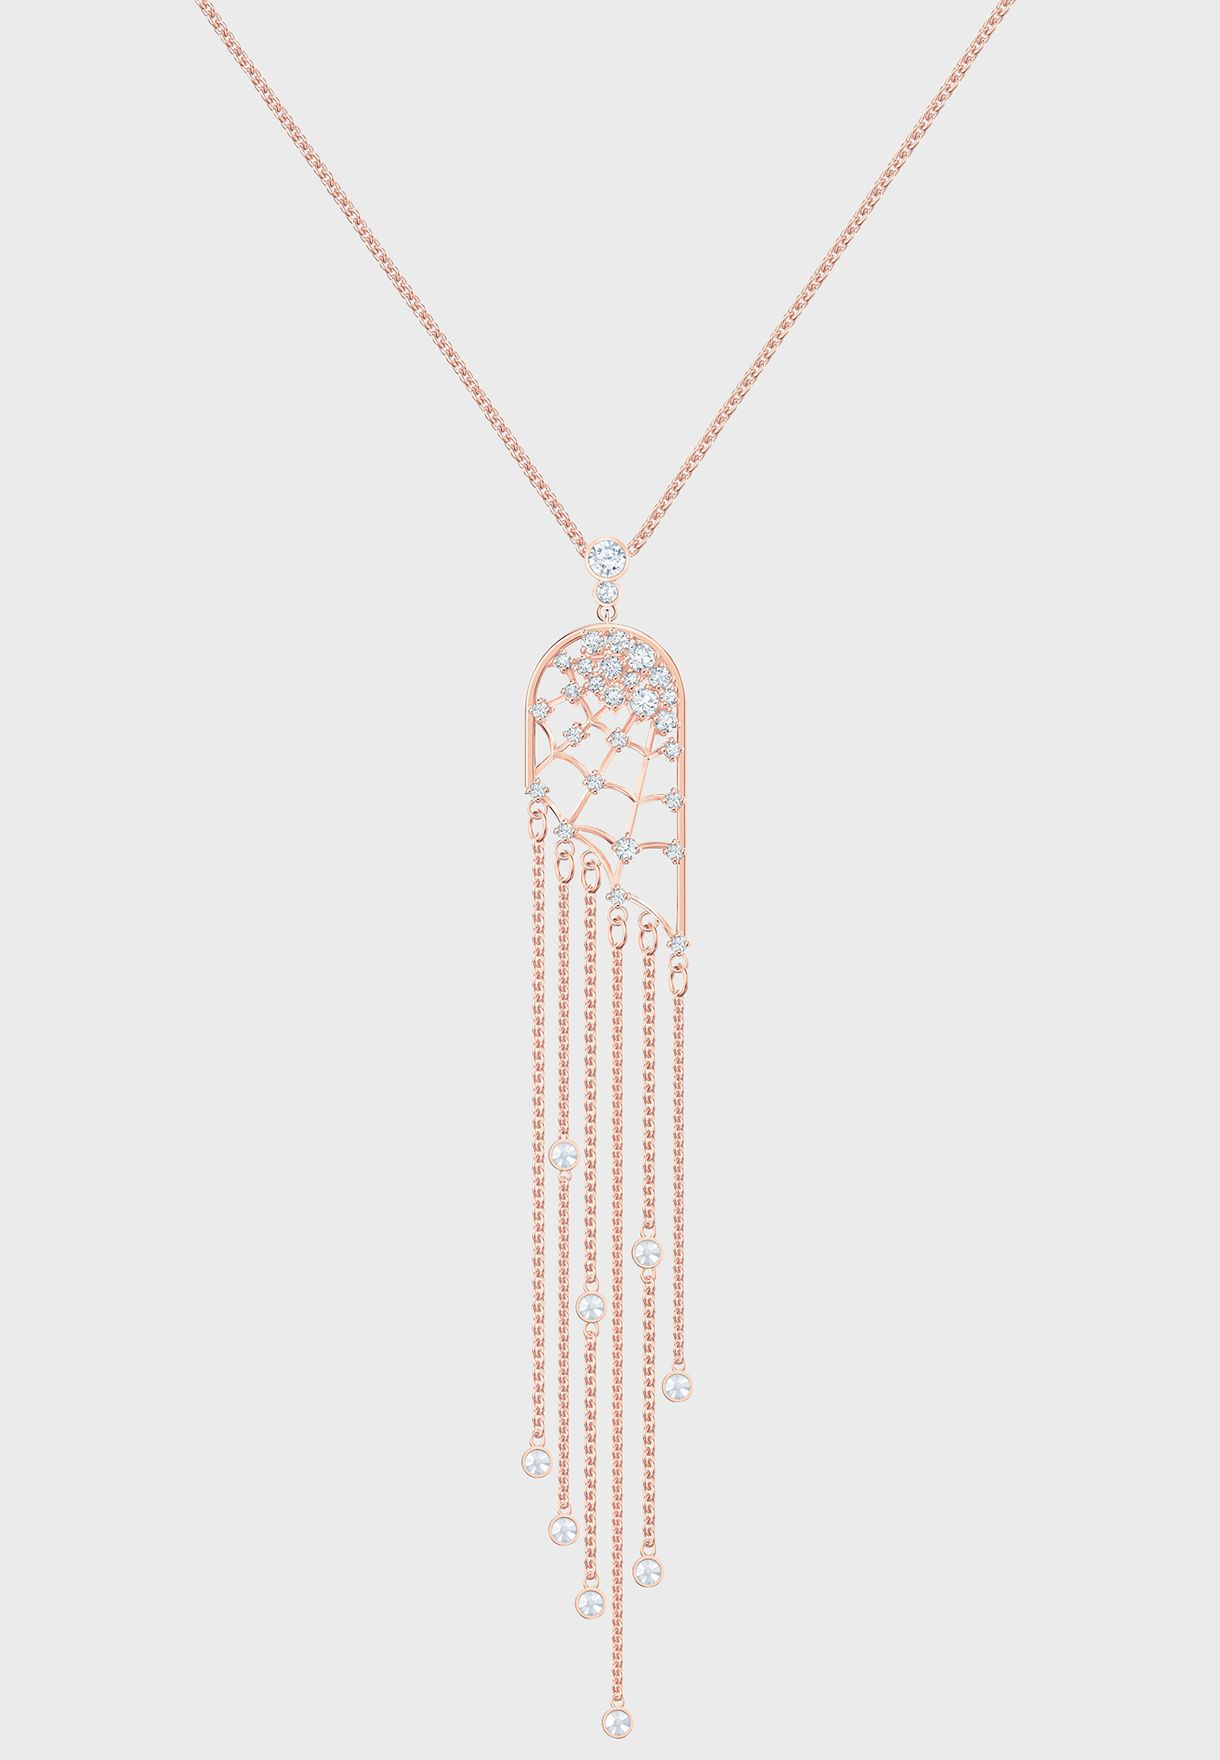 Precisely Necklace